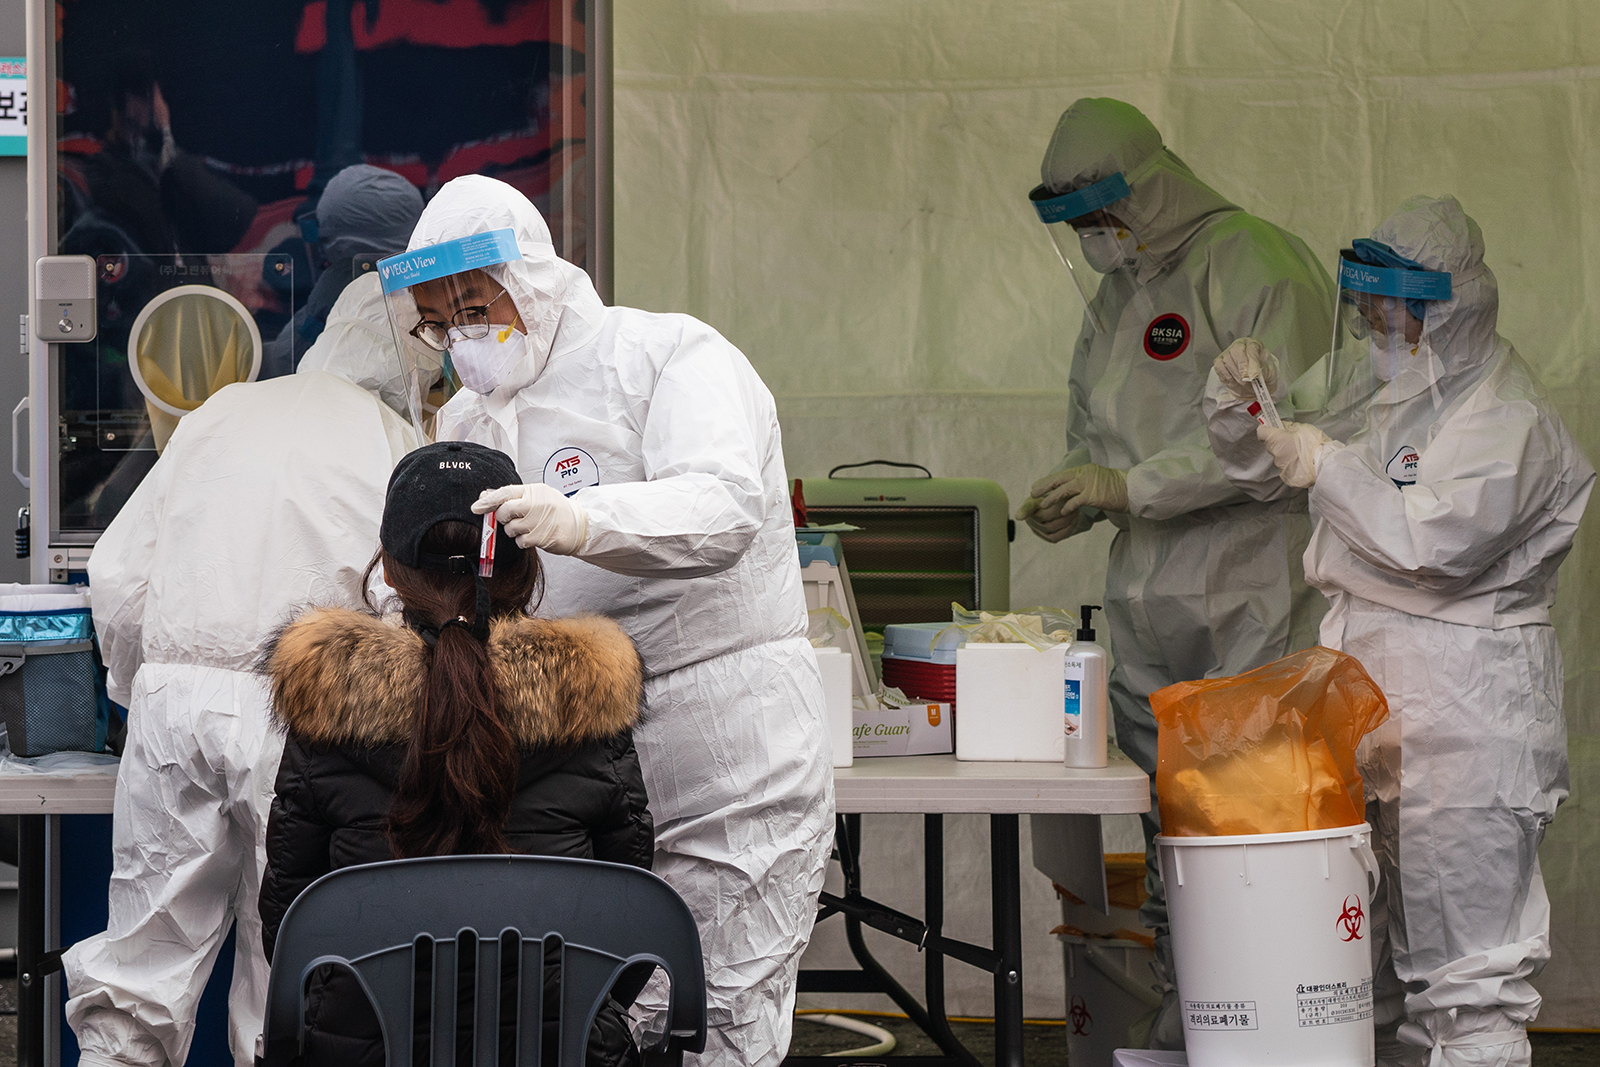 A healthcare worker collects samples from a woman at a temporary Covid-19 testing site in front of Seoul Station in South Korea, on December 18.